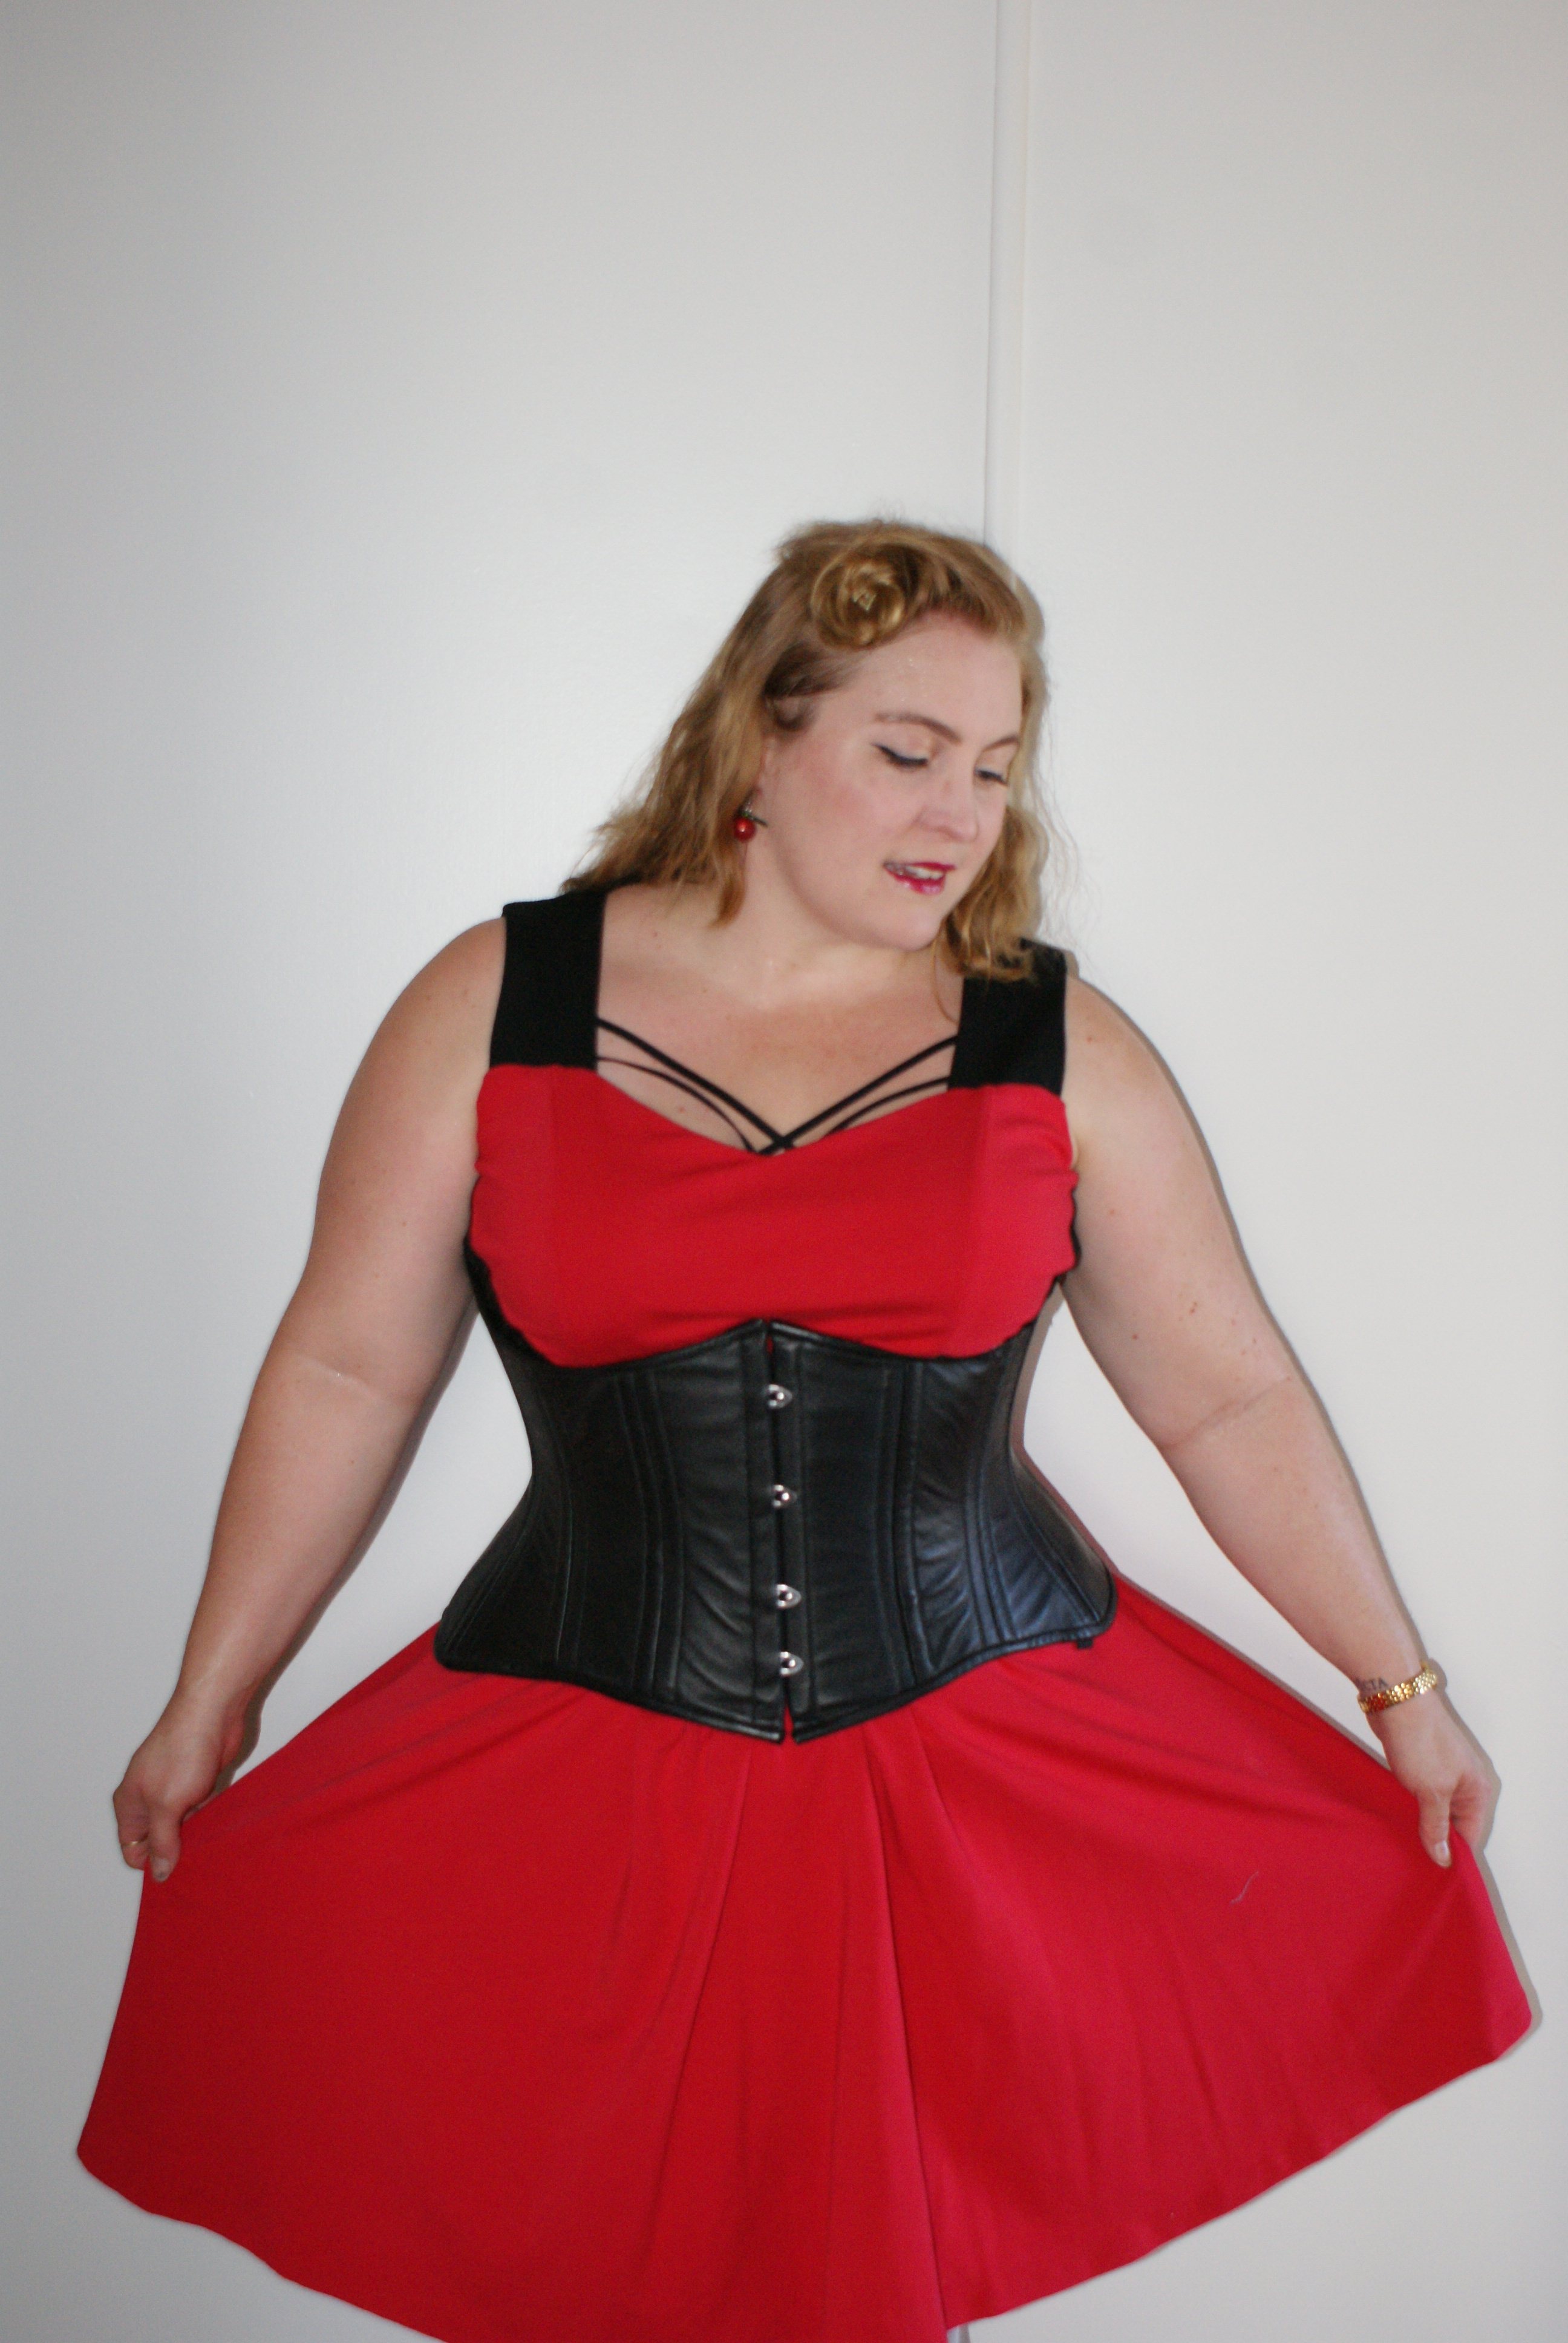 ffa3c781b9 This is a beautifully made steel boned corset that gives proper support and  waist reduction. With 24 flat and spiral steel bones